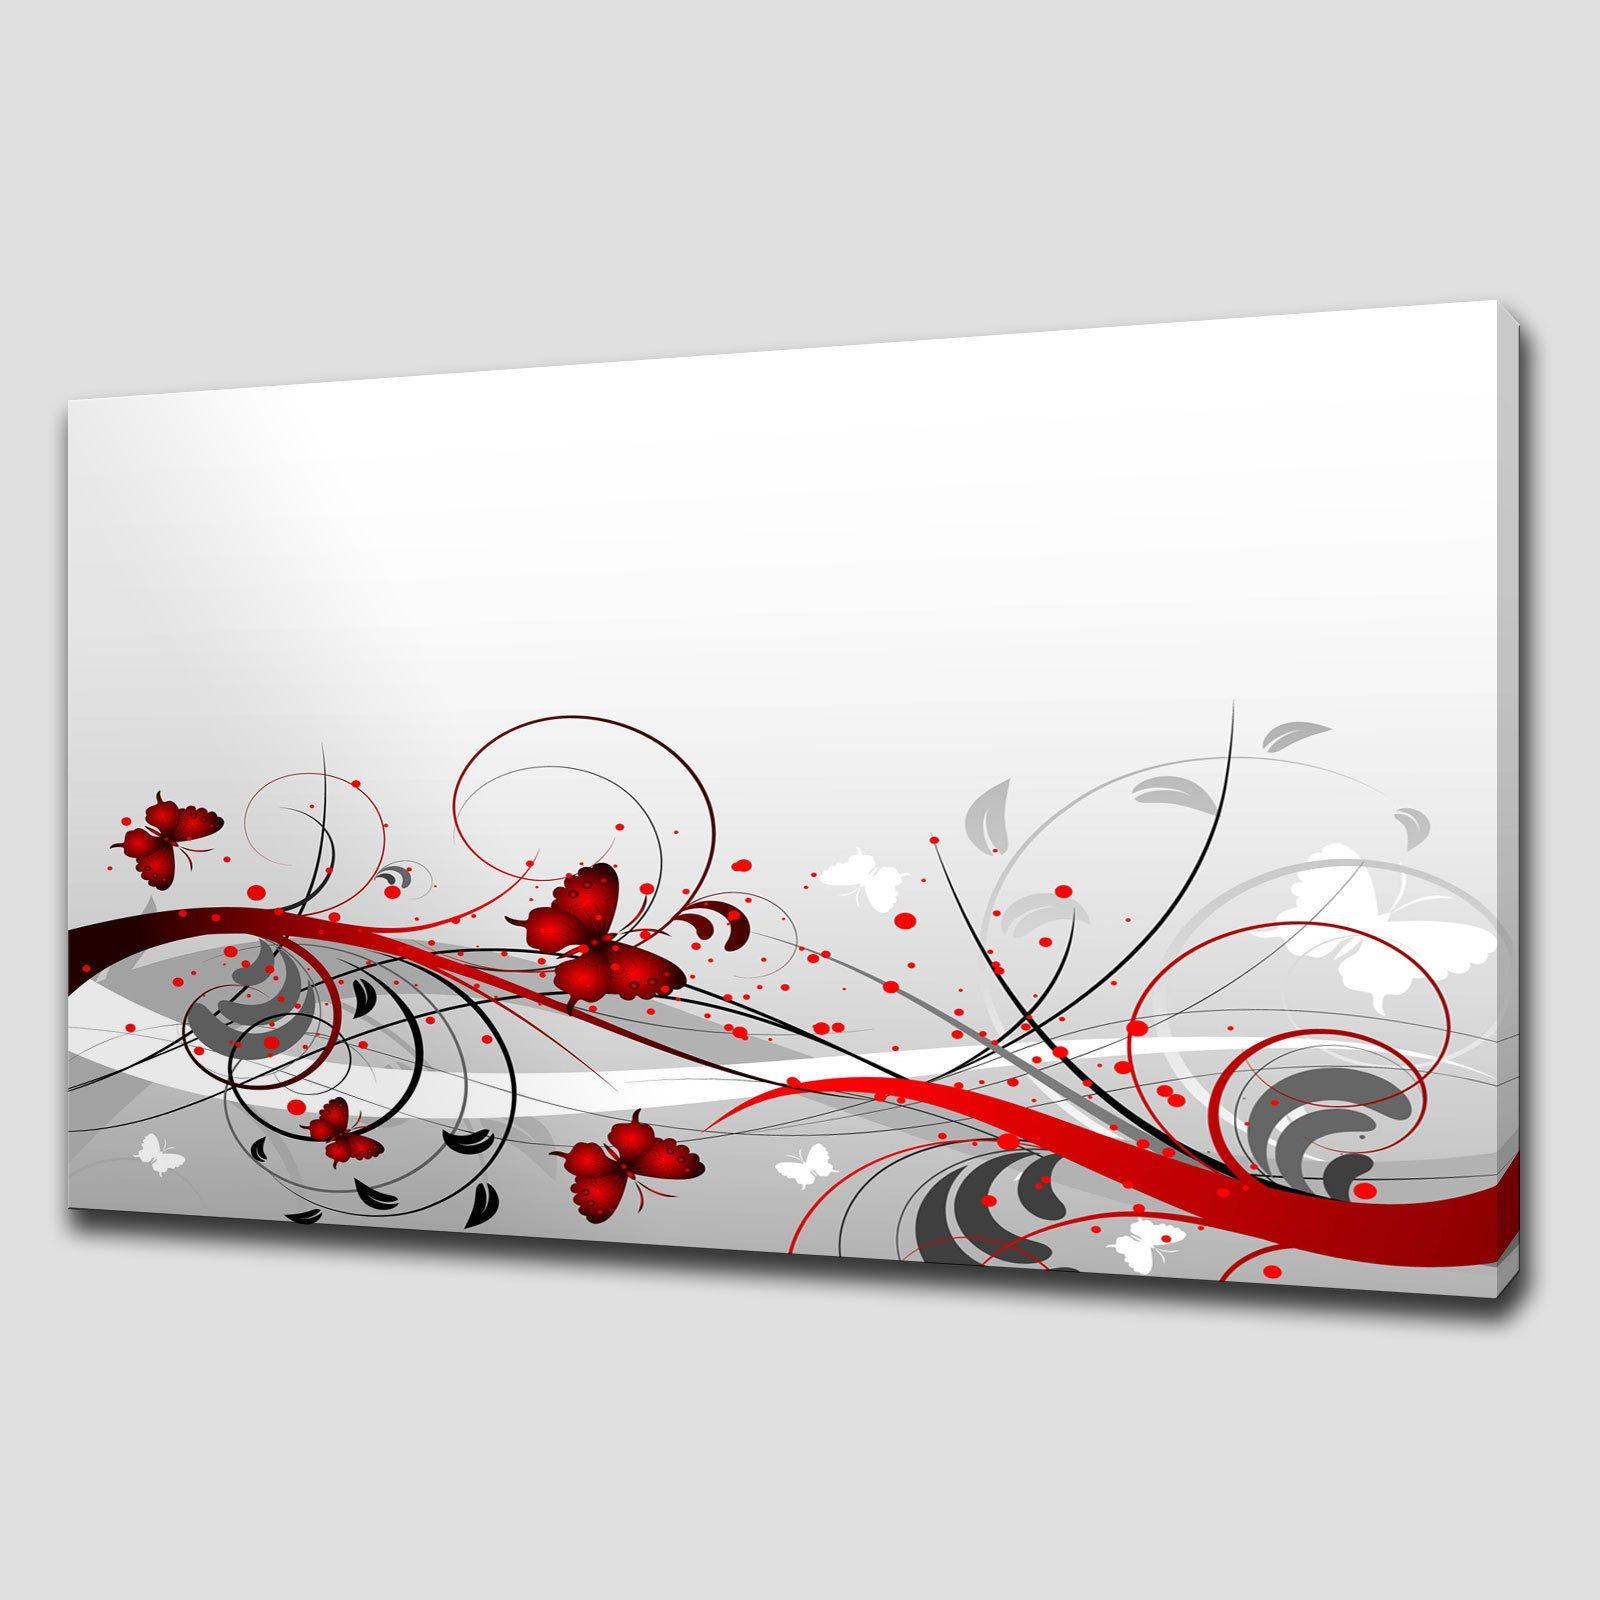 Red Wall Decor Art : Fabulous red wall decor pictures decors dievoon